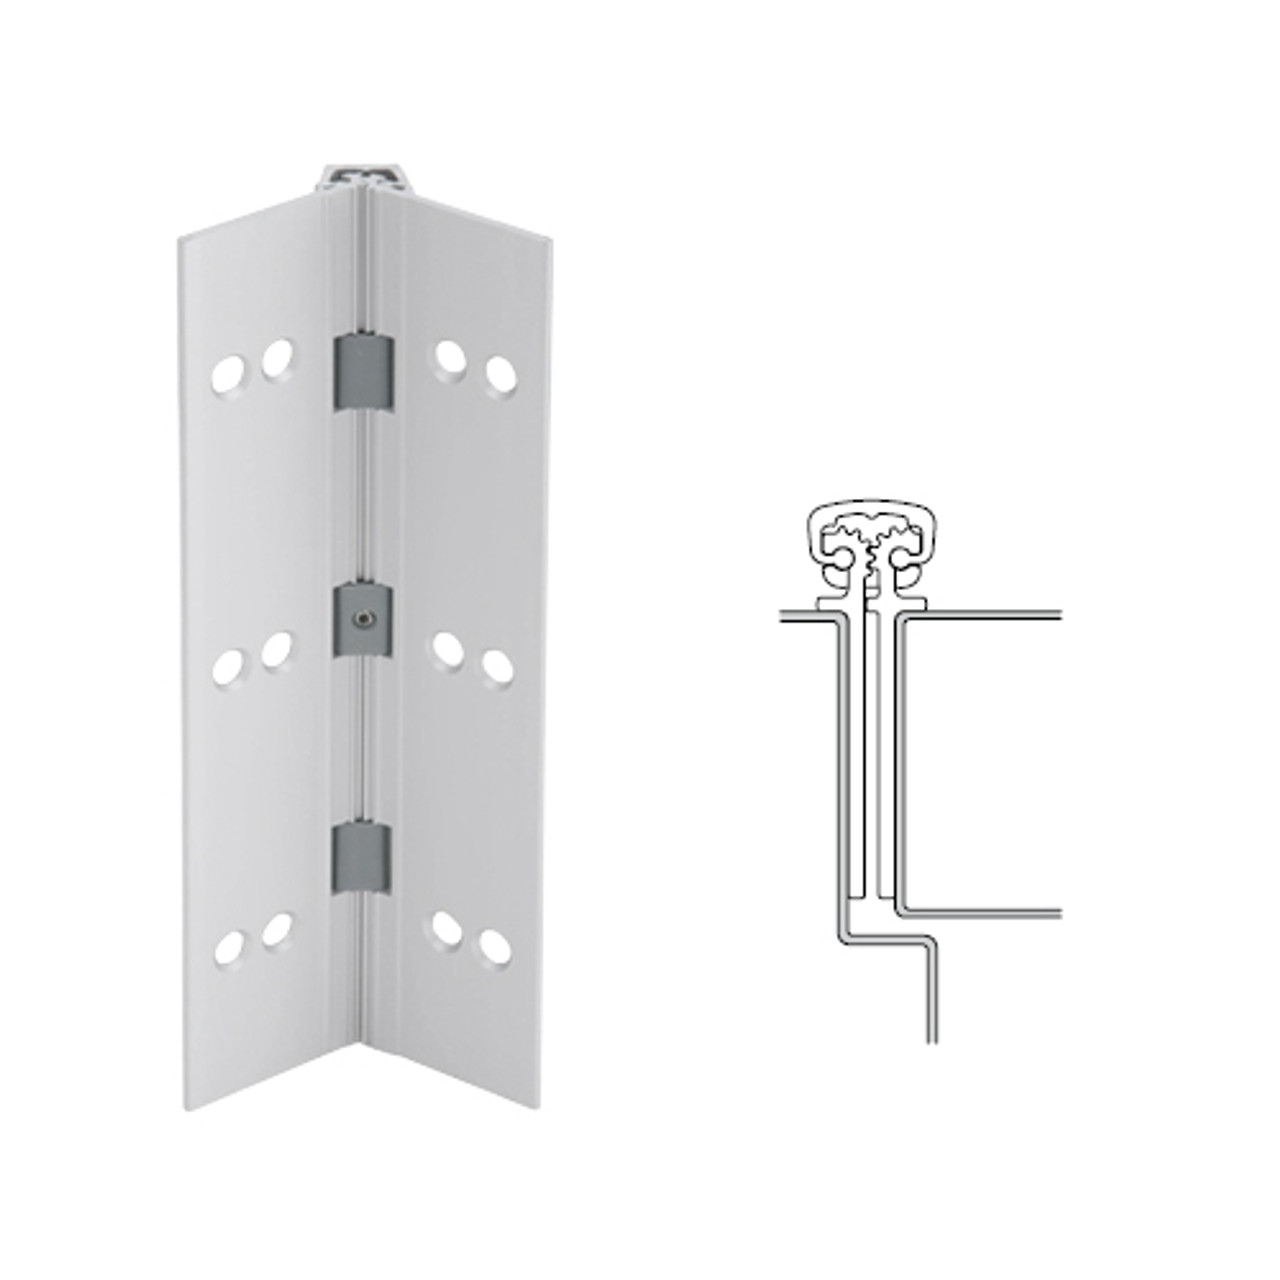 027XY-US28-85 IVES Full Mortise Continuous Geared Hinges in Satin Aluminum